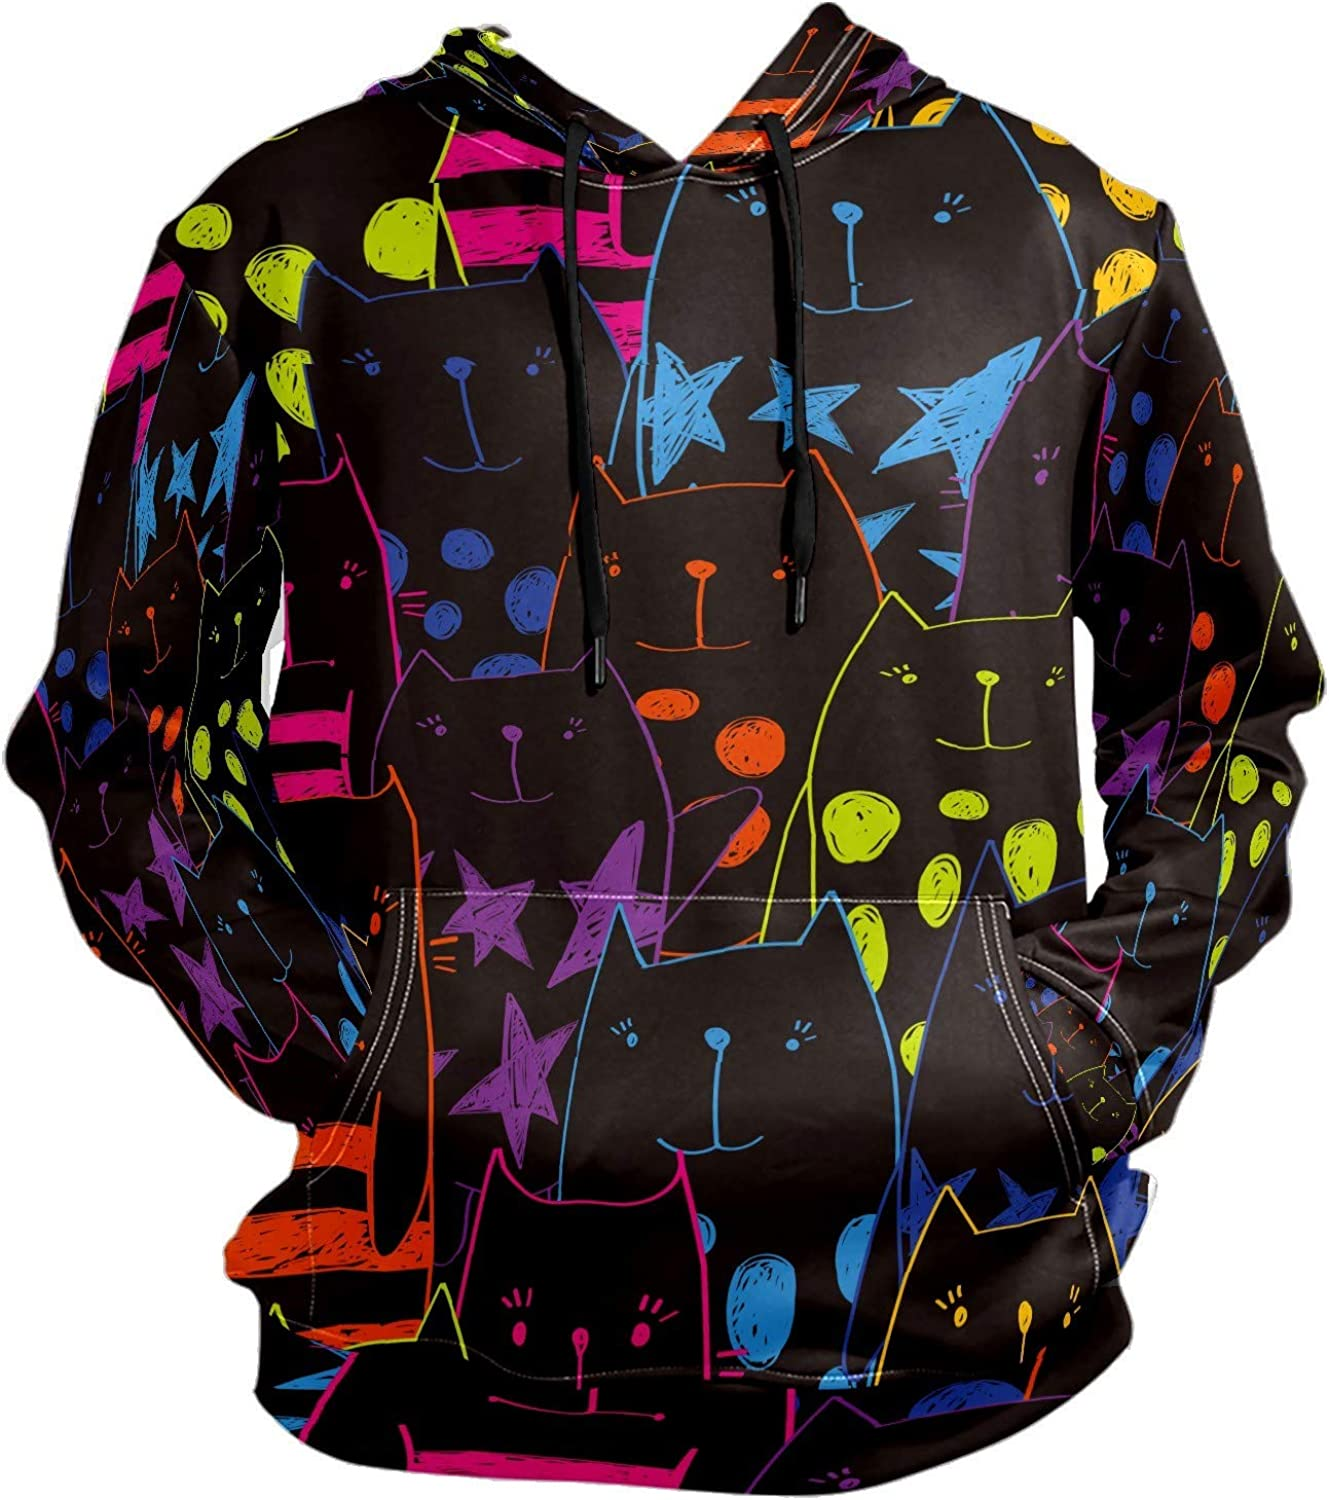 Men's Sport Hoodie Hand Drawn Colorful Cute Cat Big and Tall Hoodies for Men Women Oversized Hooded Sweatshirt Hip Hop Pullover Hoodie Midweight Hood for Boys Girls